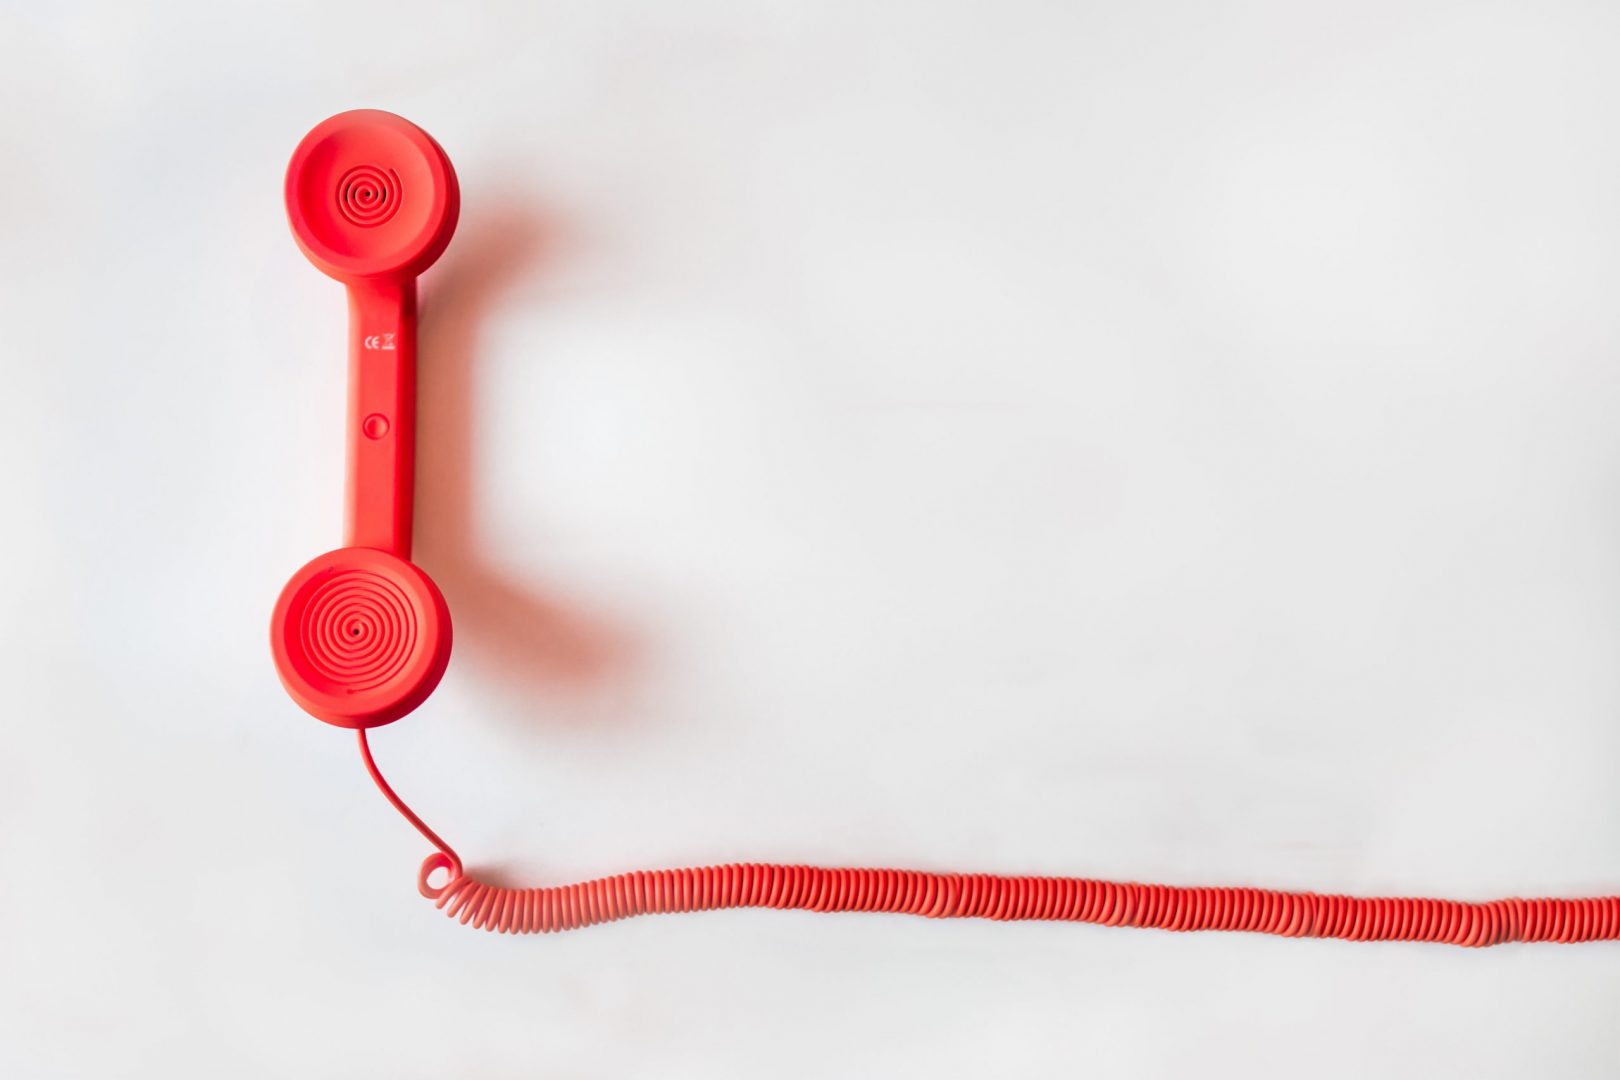 red corded phone with cord trailing off the camera screen